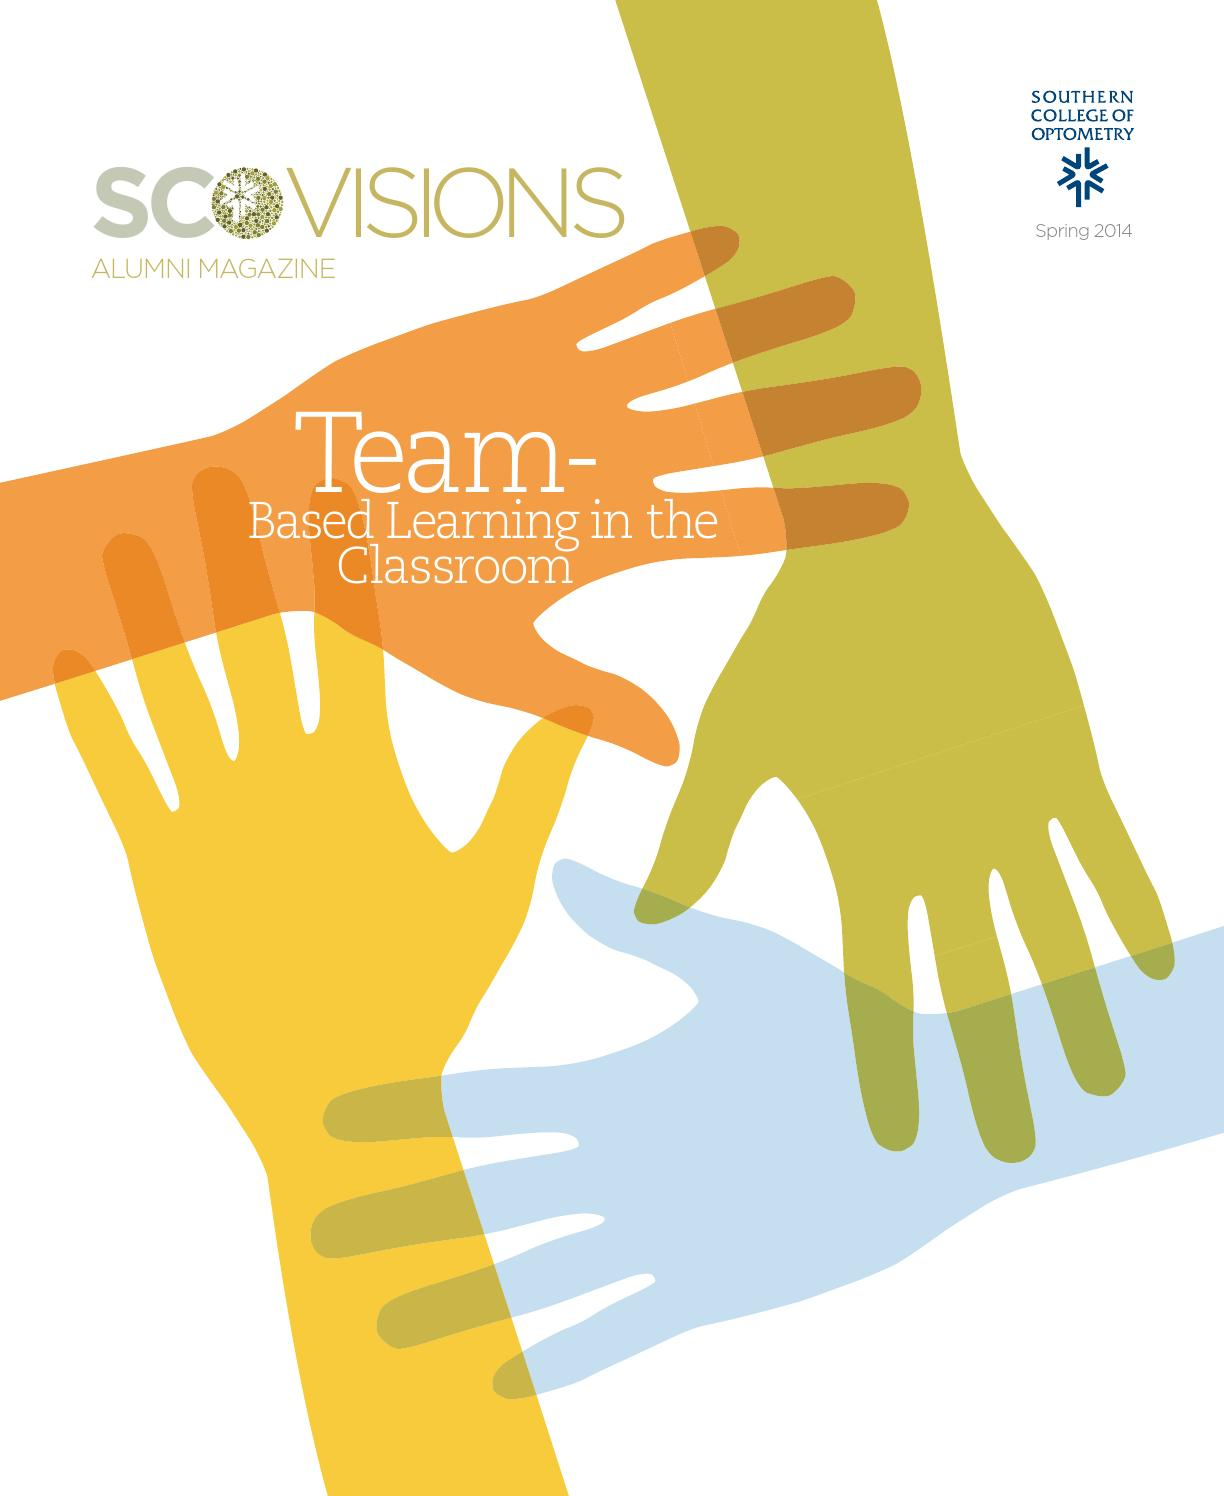 visions alumni magazine - spring 2014 - southern college of